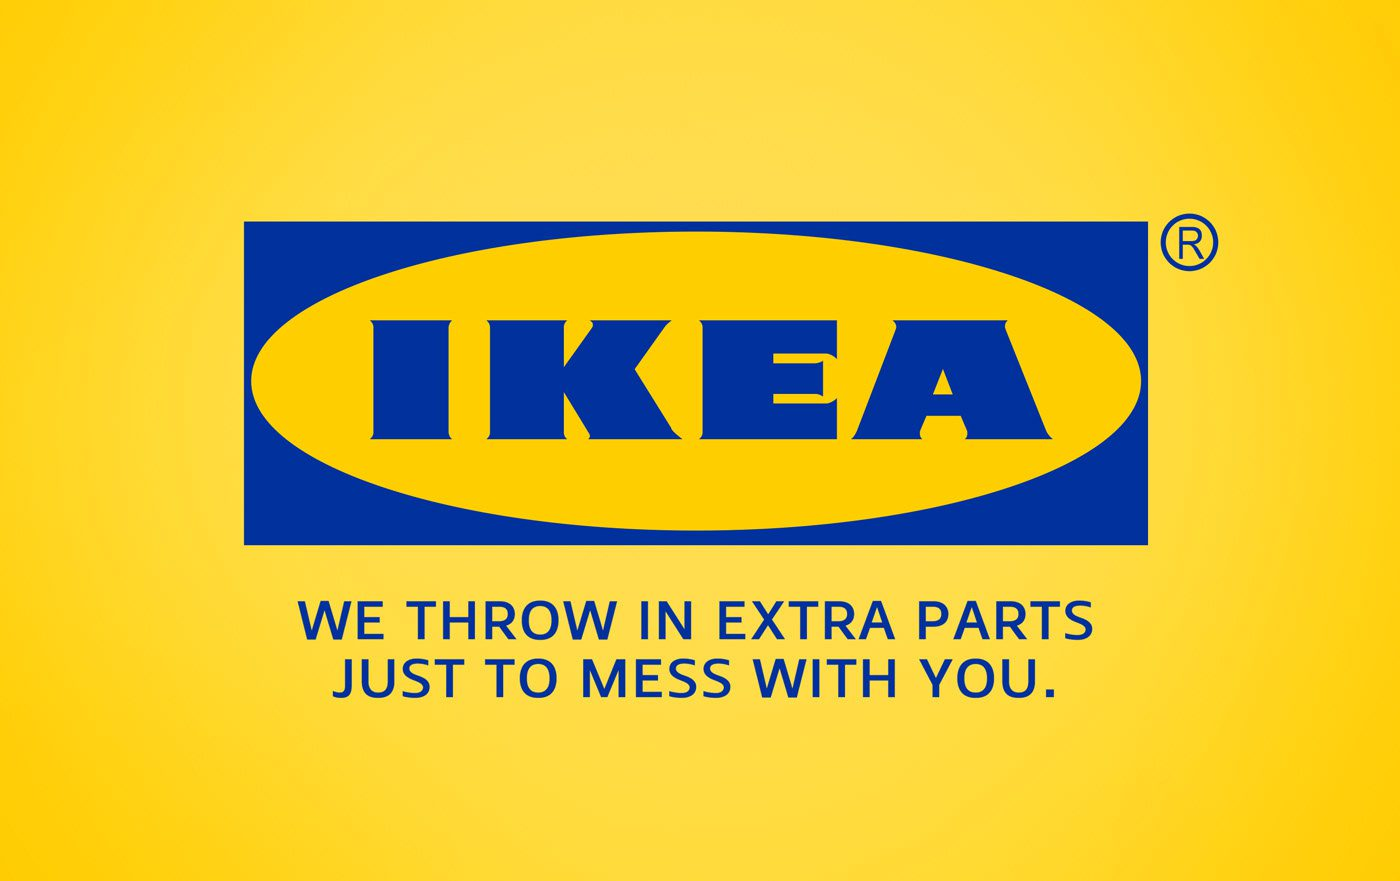 ikea - we throw in extra parts just to mess with you